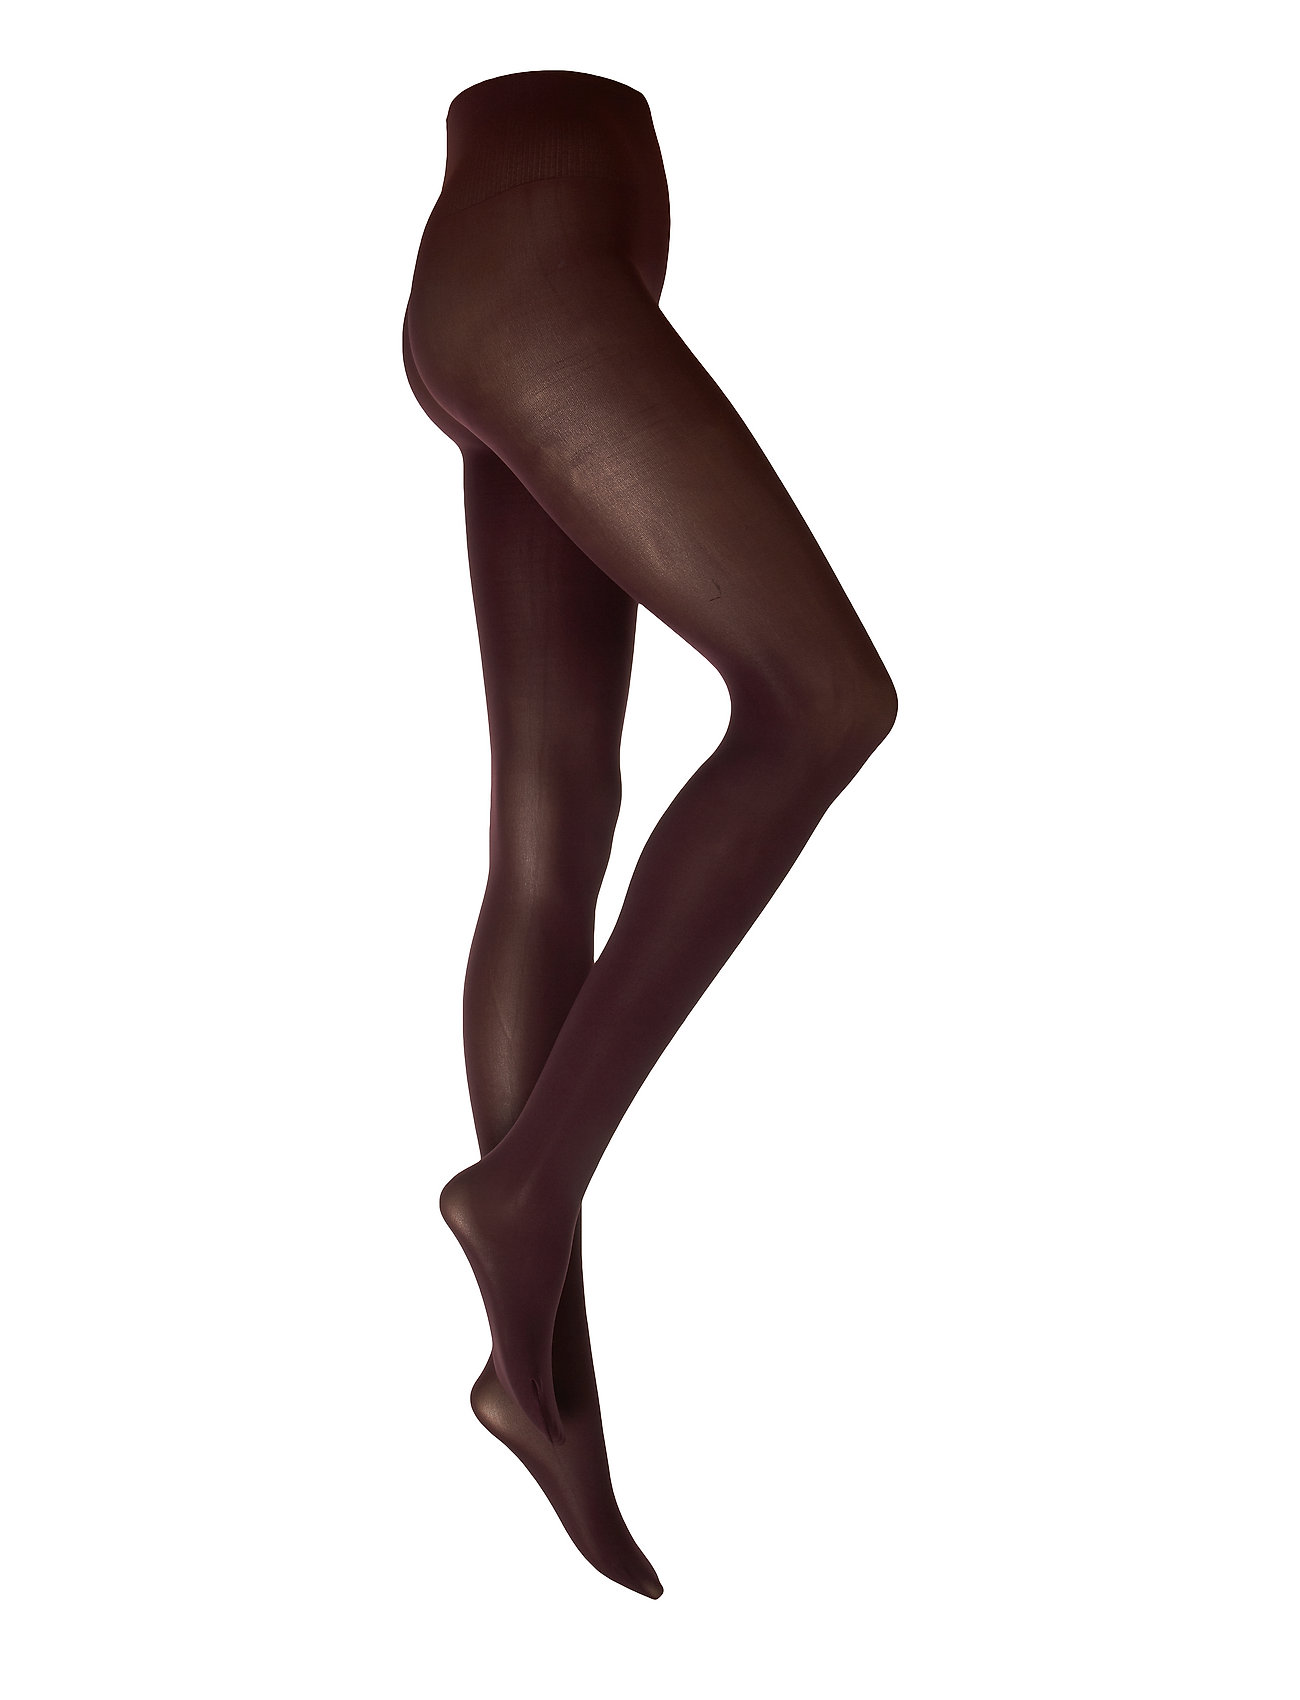 Swedish Stockings Olivia Premium tights 60D - BORDEAUX